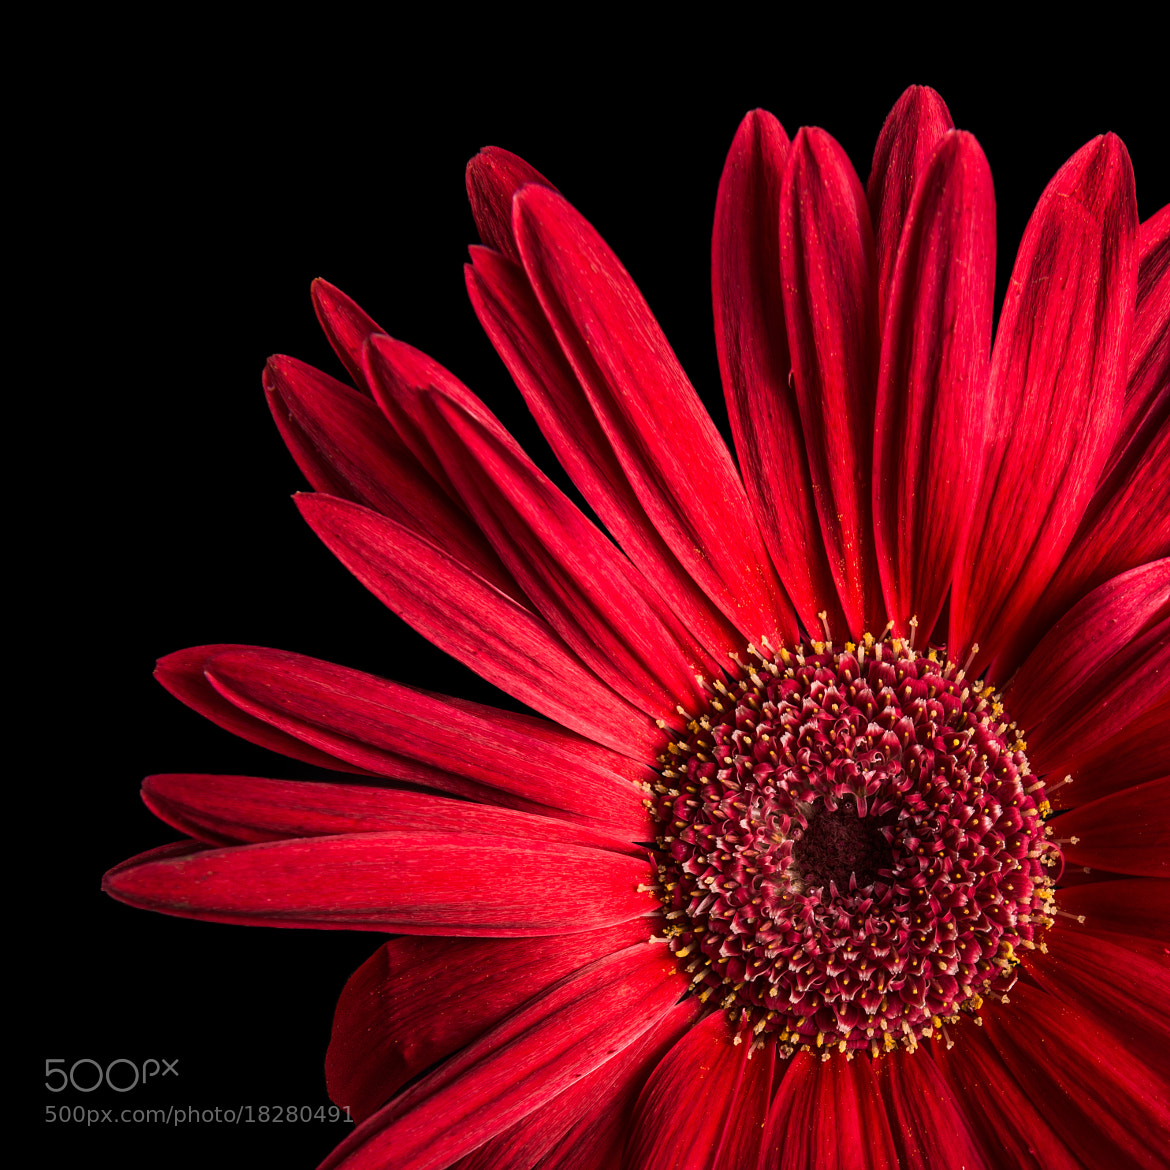 Photograph Gerbera on Black by Petri Damstén on 500px